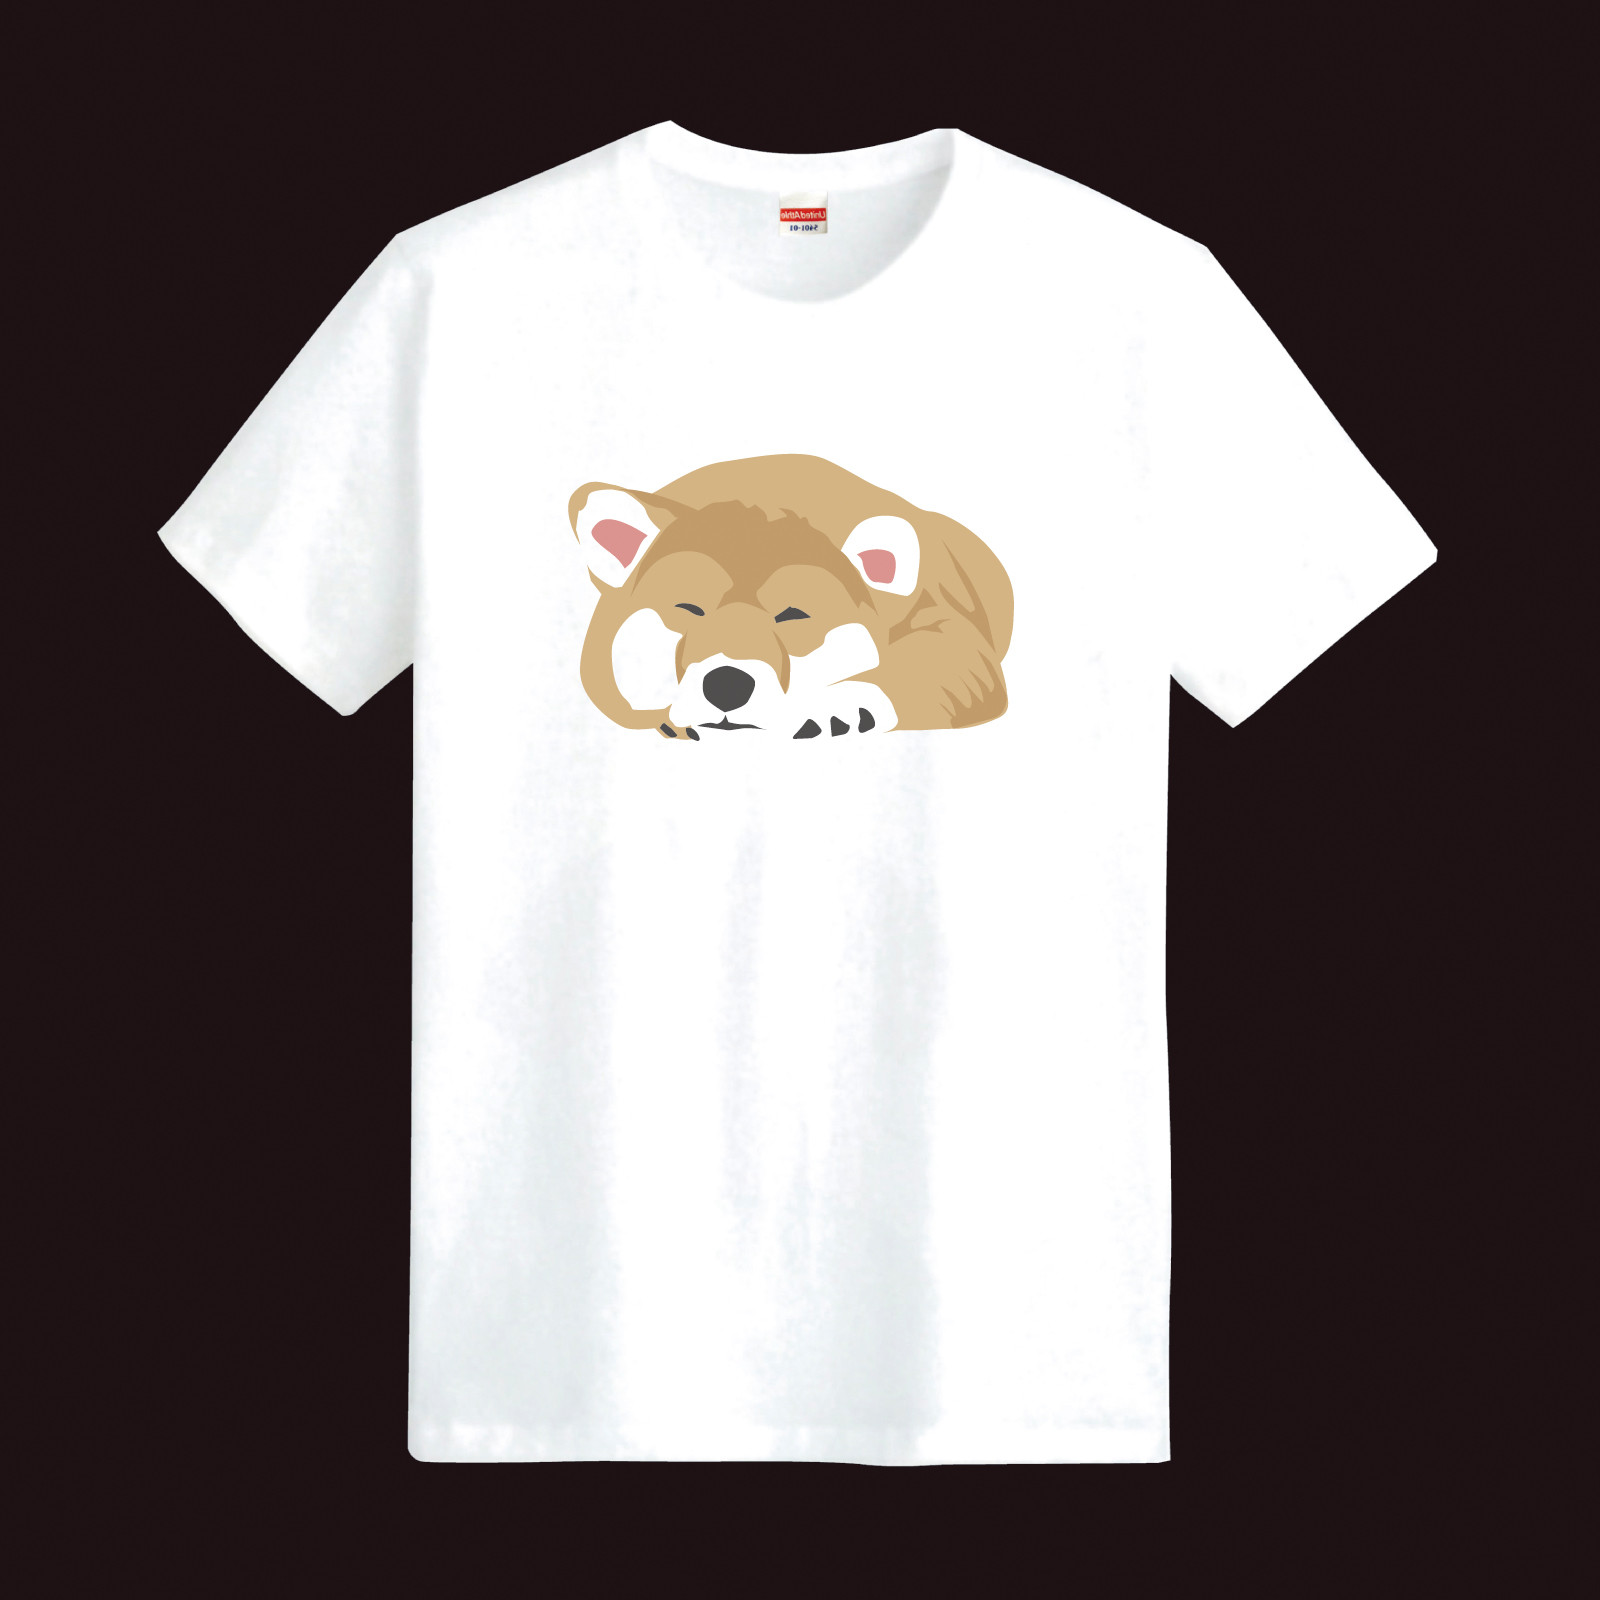 98bdafd8a4681 Import Designer T-shirt from Japan at wholesale prices